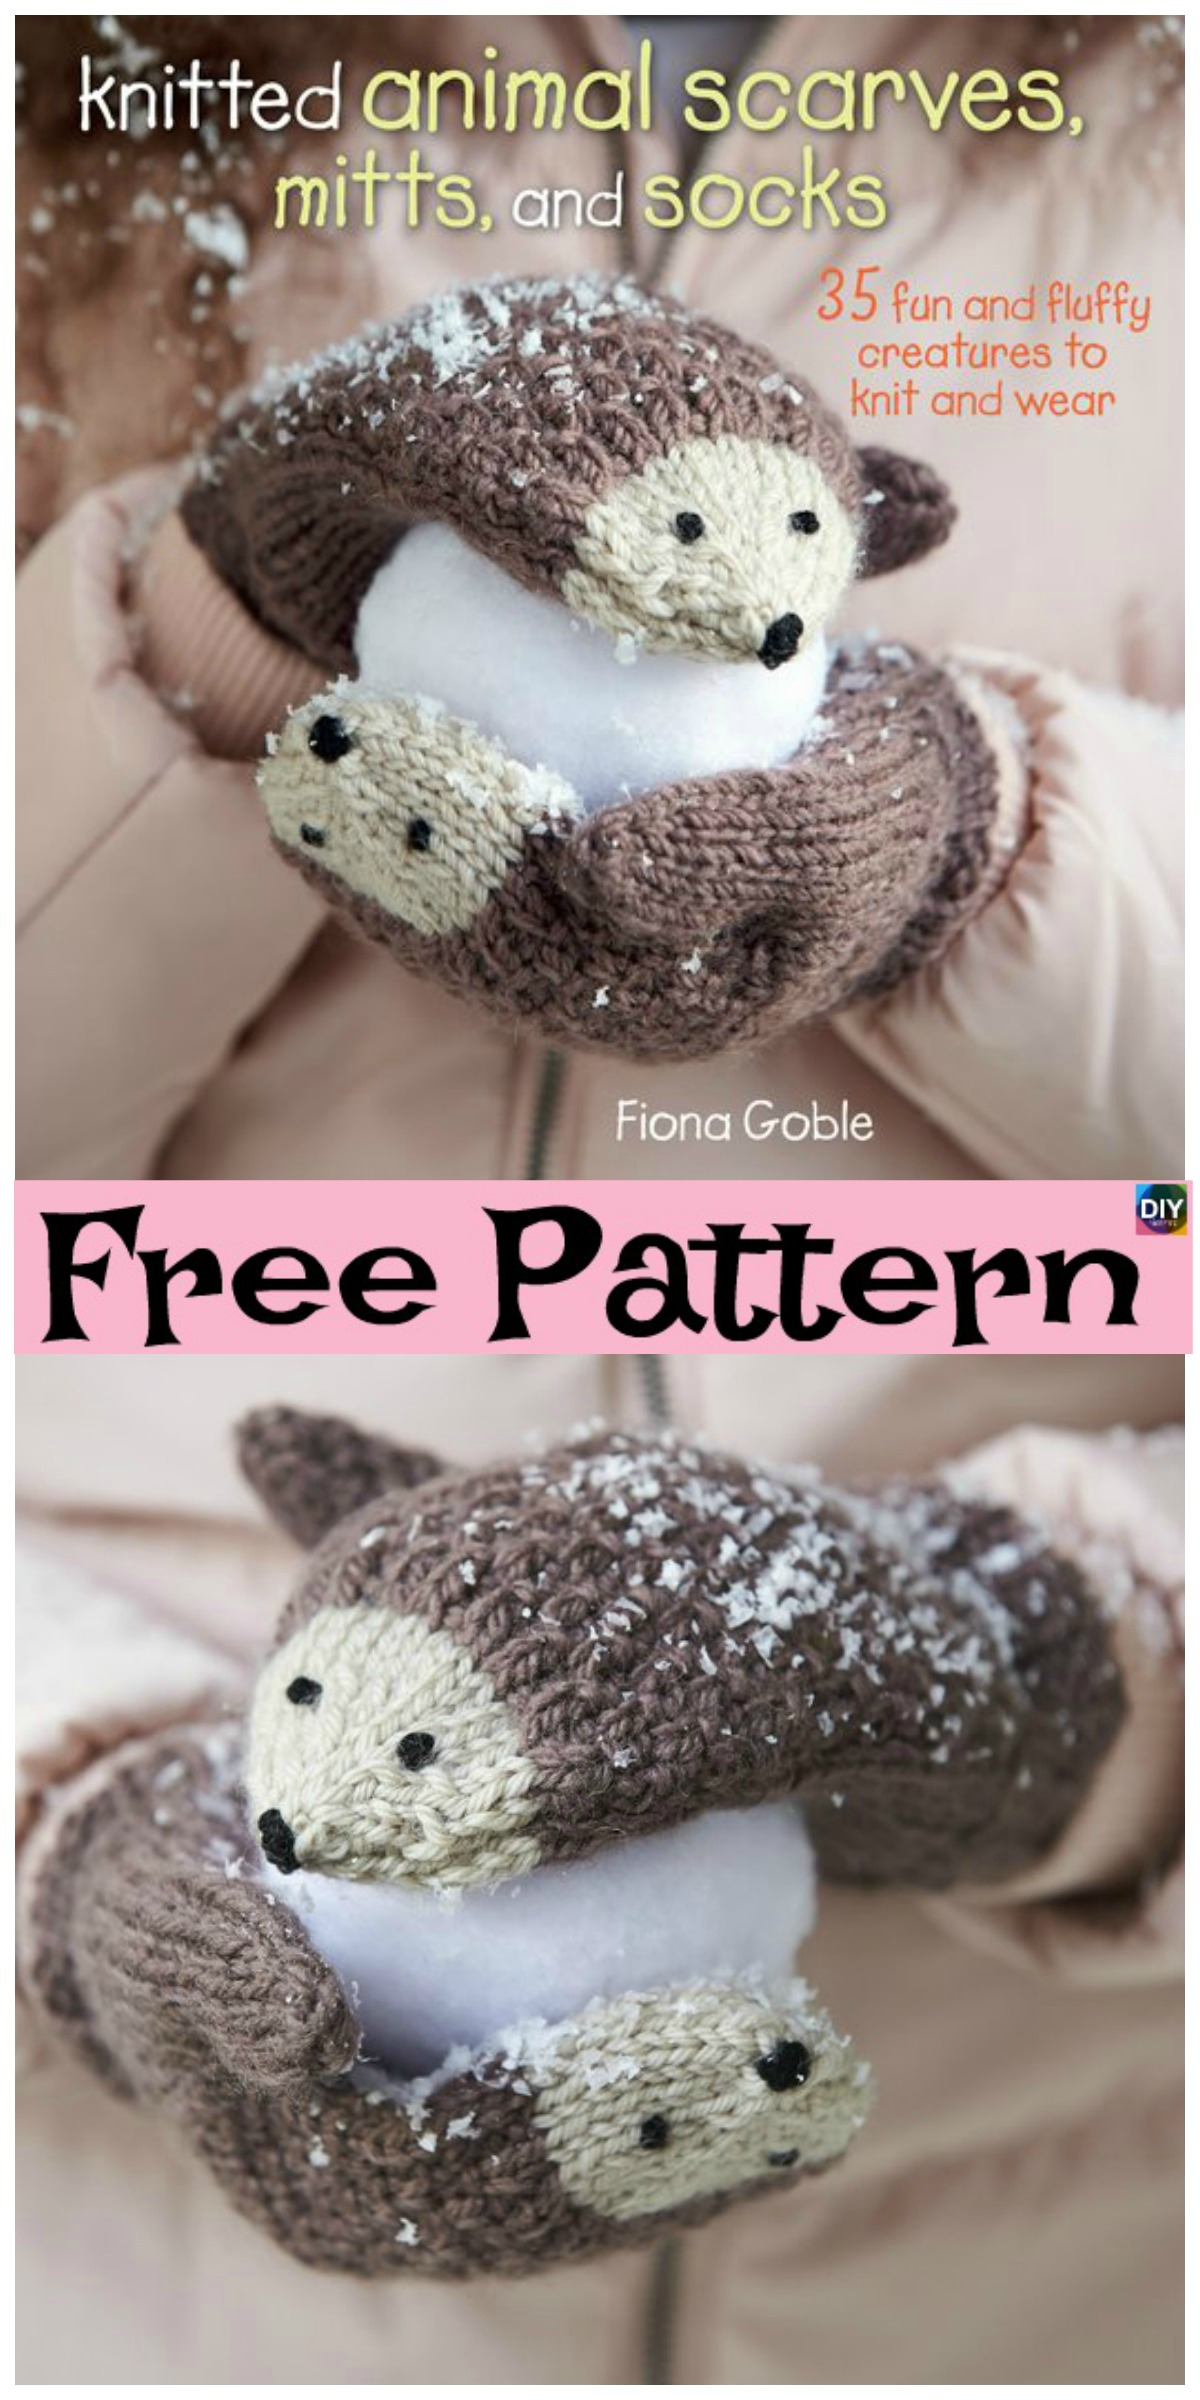 diy4ever-Knit Hedgehog Mittens - Free Pattern